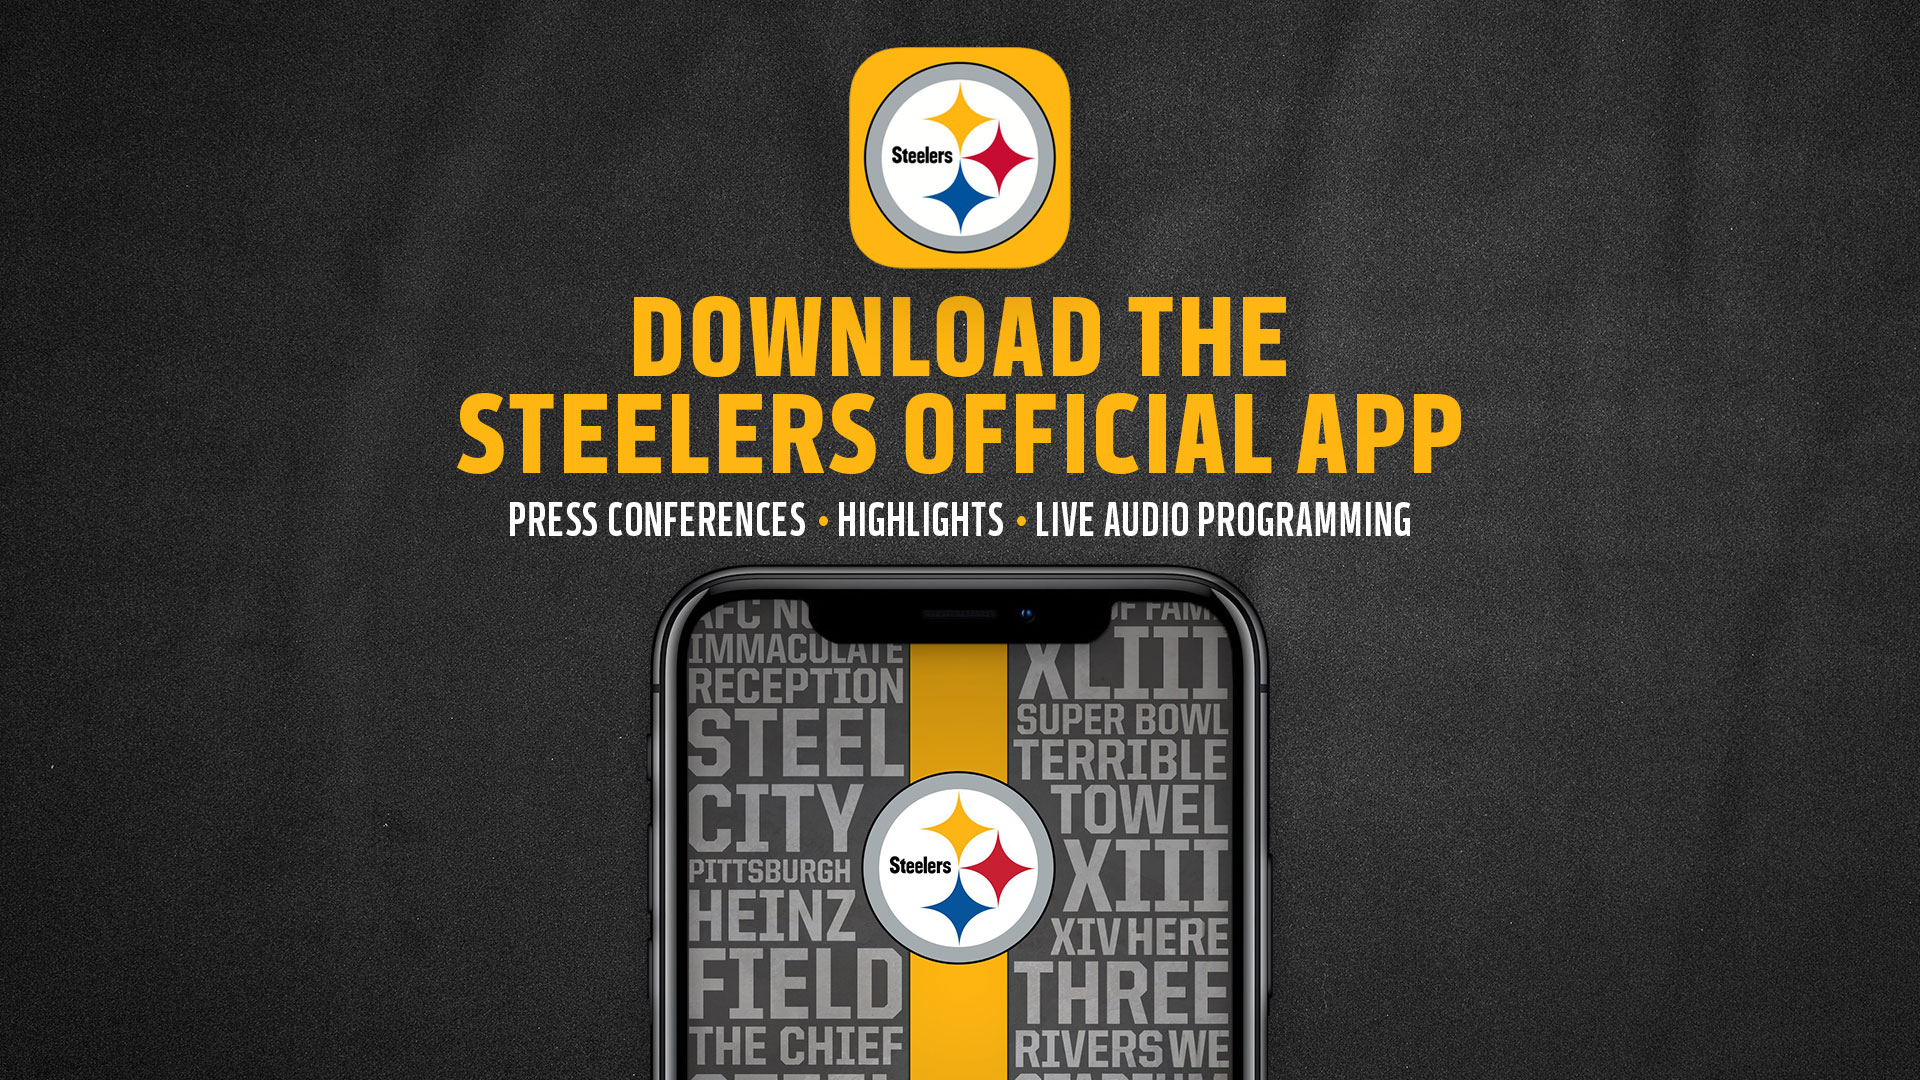 Steelers Home | Pittsburgh Steelers - Steelers com